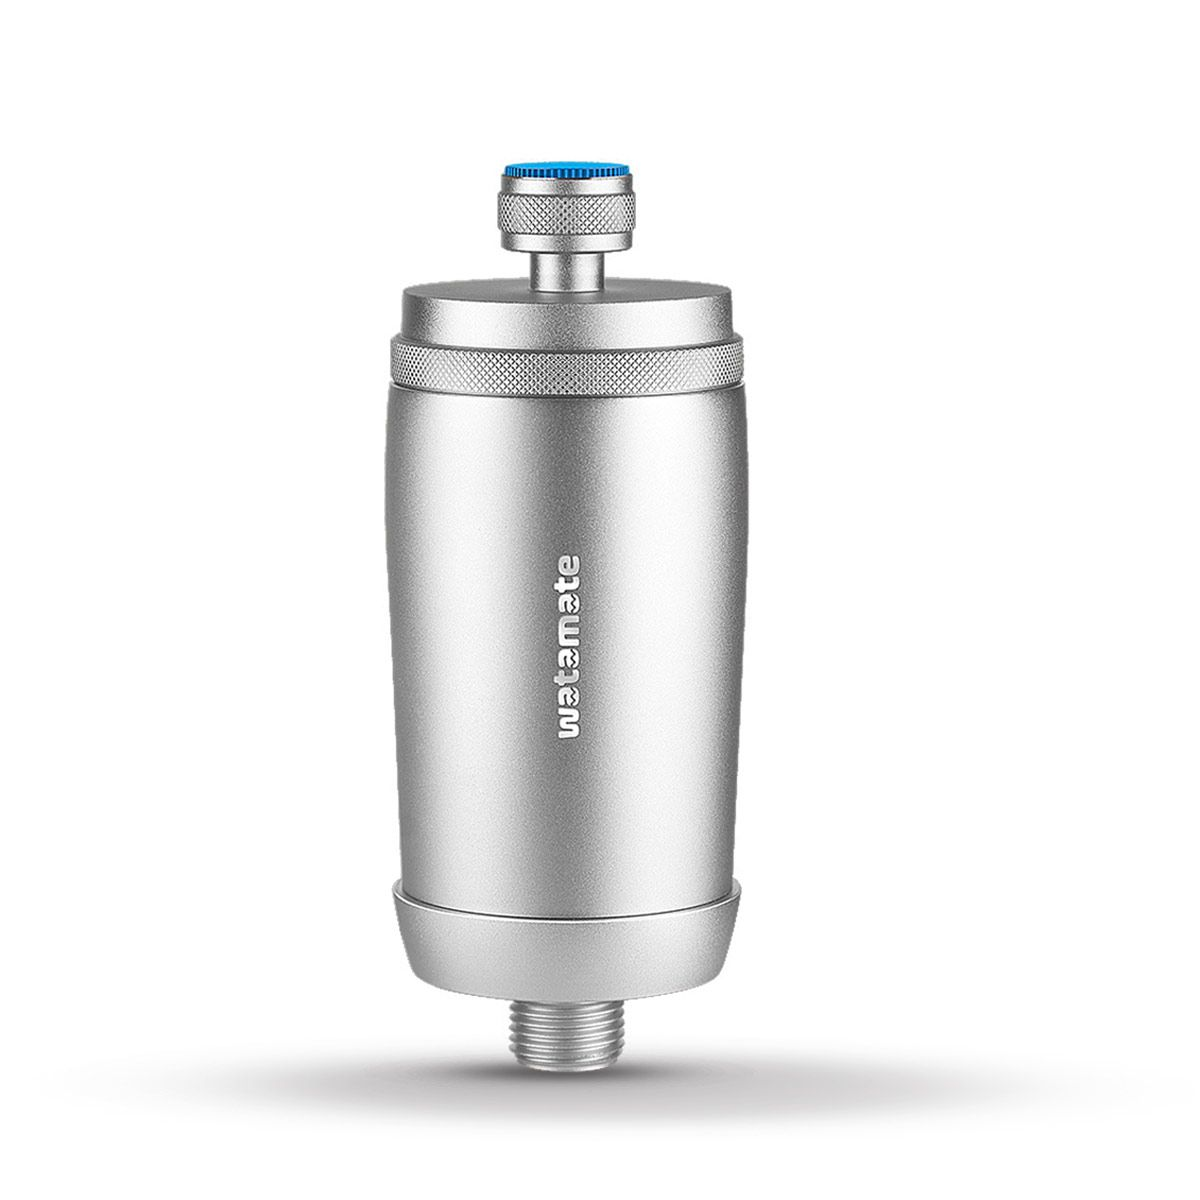 Watamate Activ+, Bathroom Shower and Tap Filter With For Hard Water